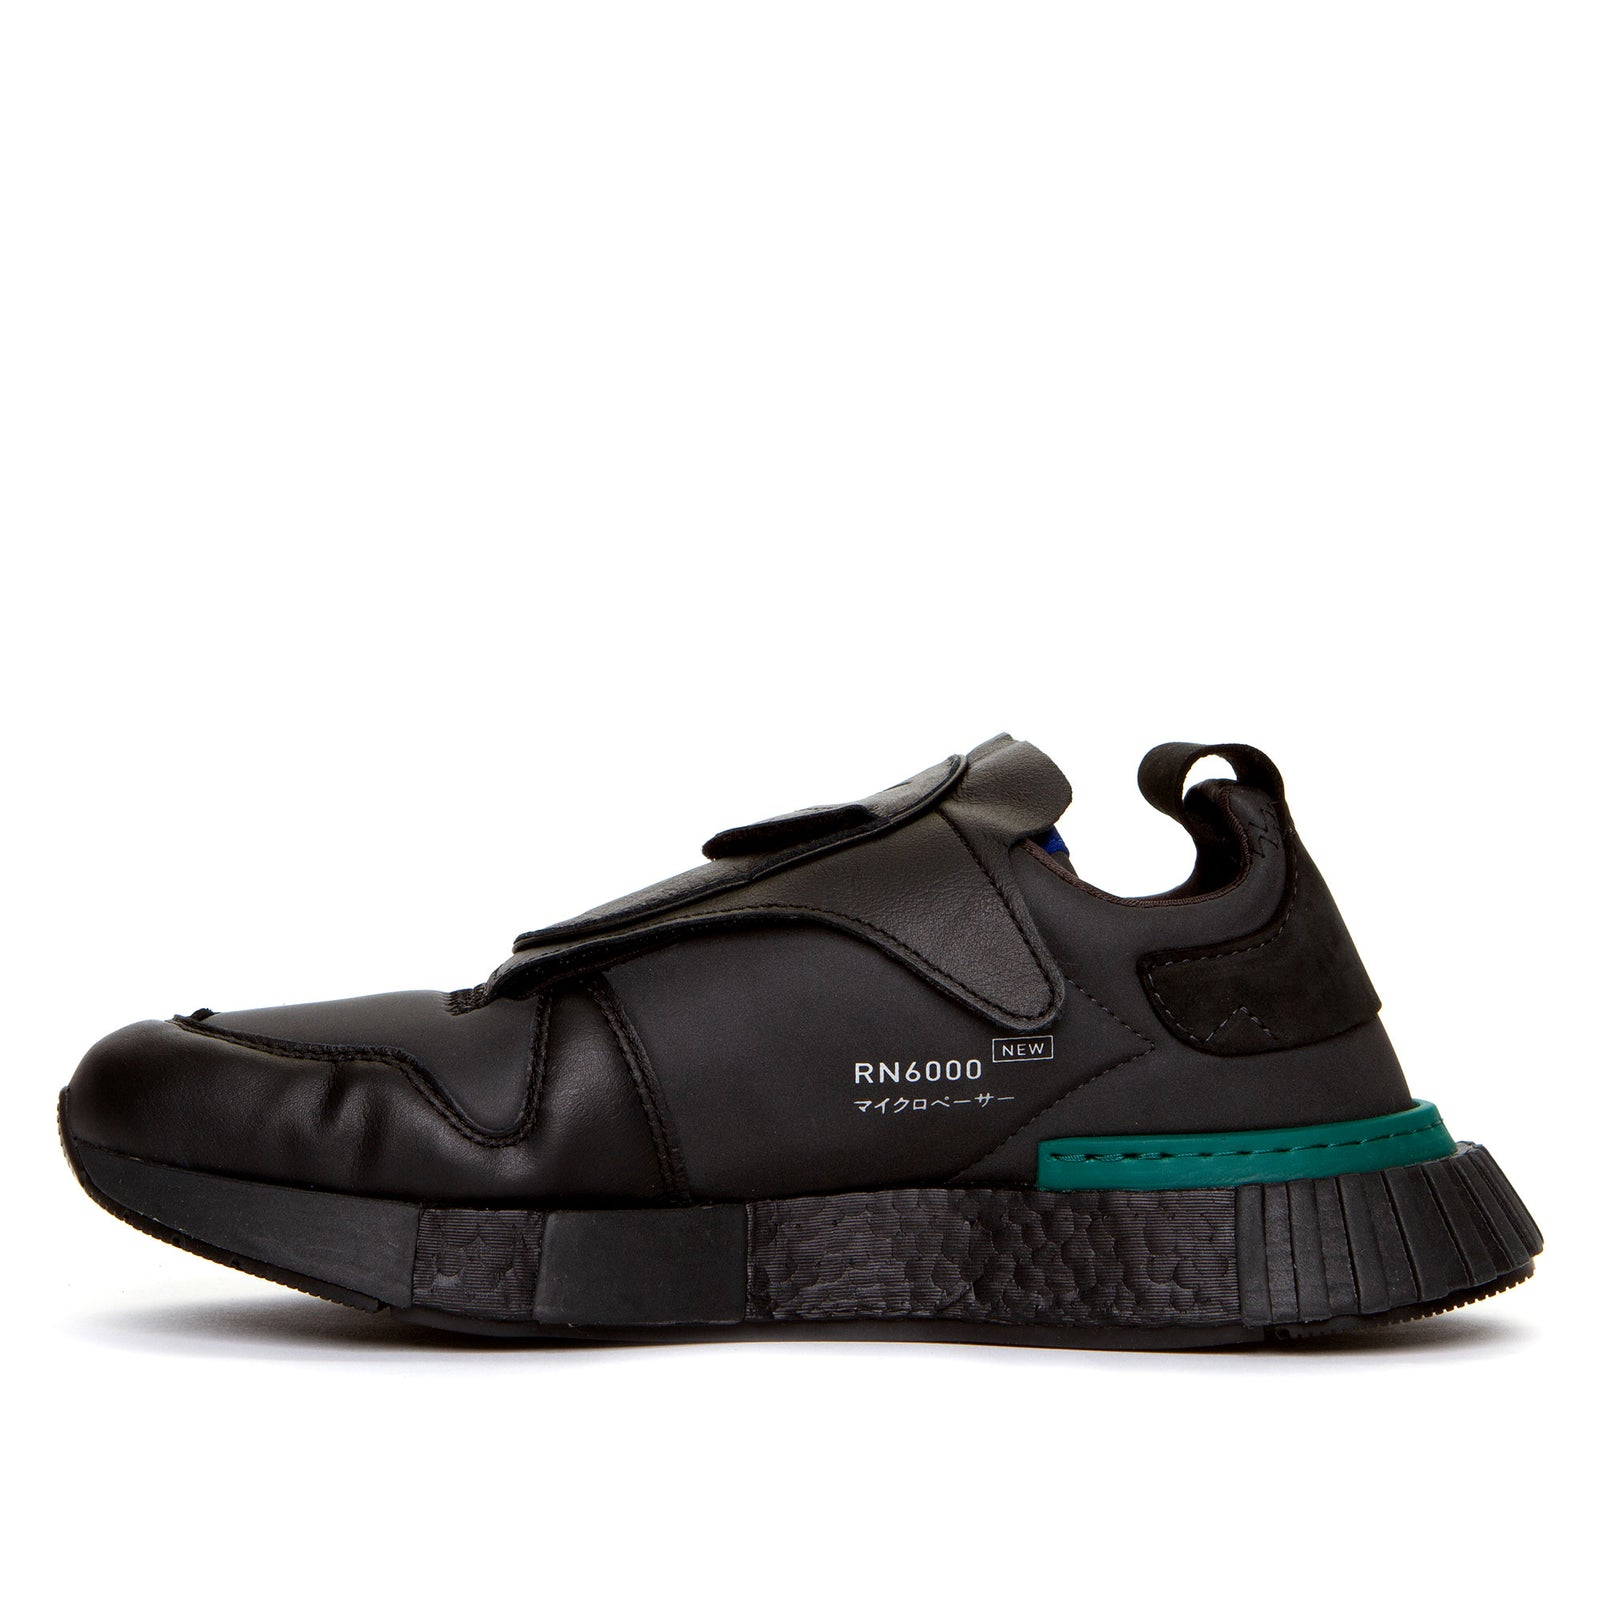 Adidas Futurepacer Shoes Black